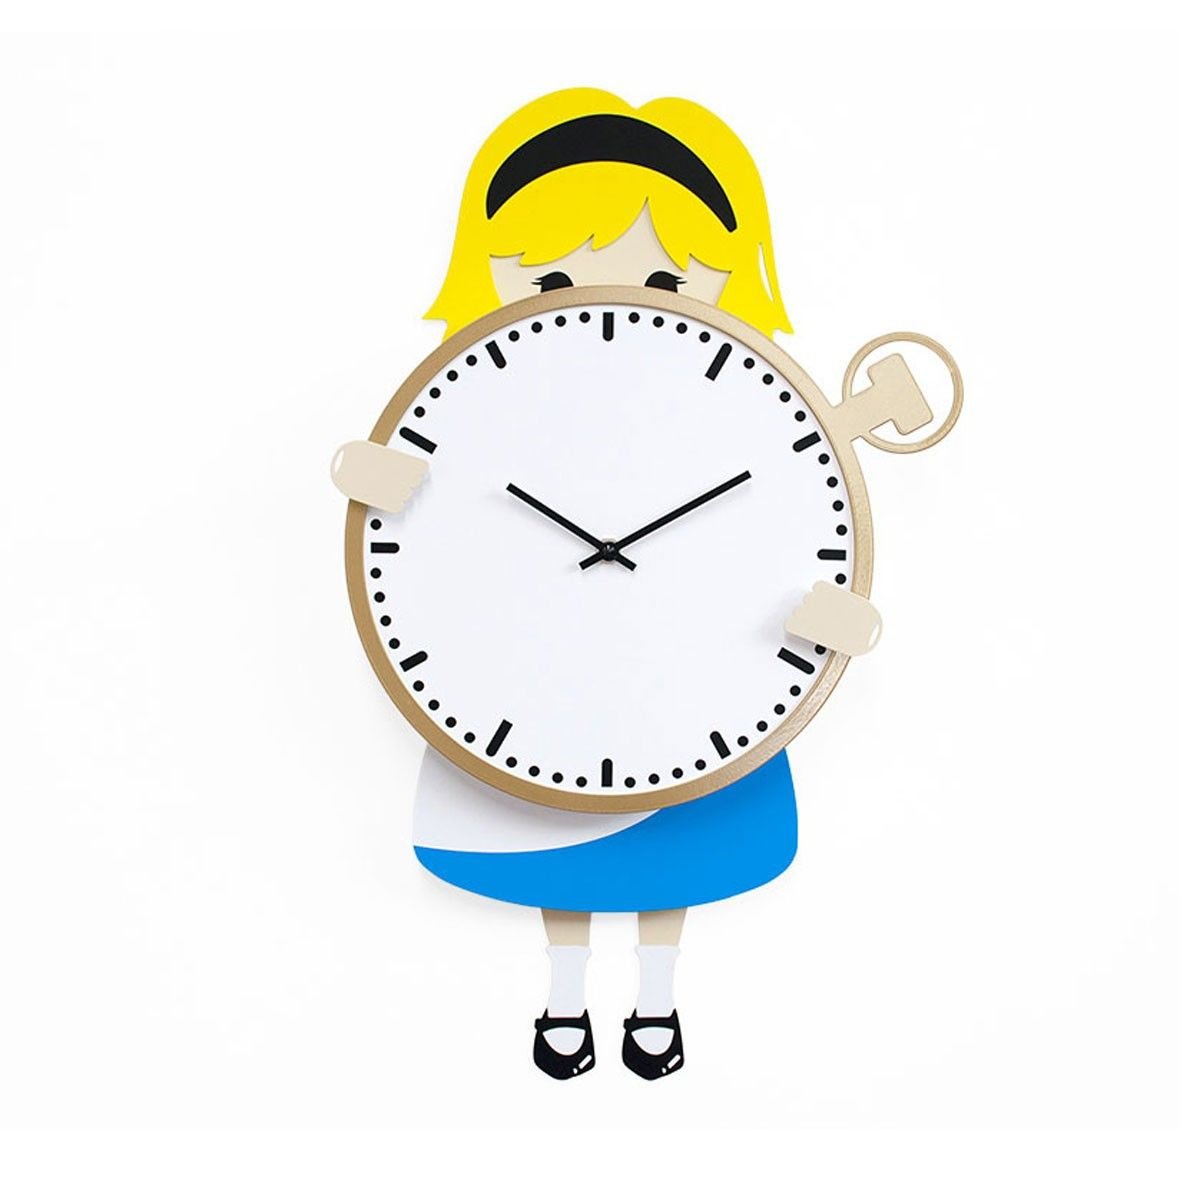 Designer High End Collector S Limited Edition Alice In Wonderland Analog Wall Clock Wall Clock Clock Large Wall Clock